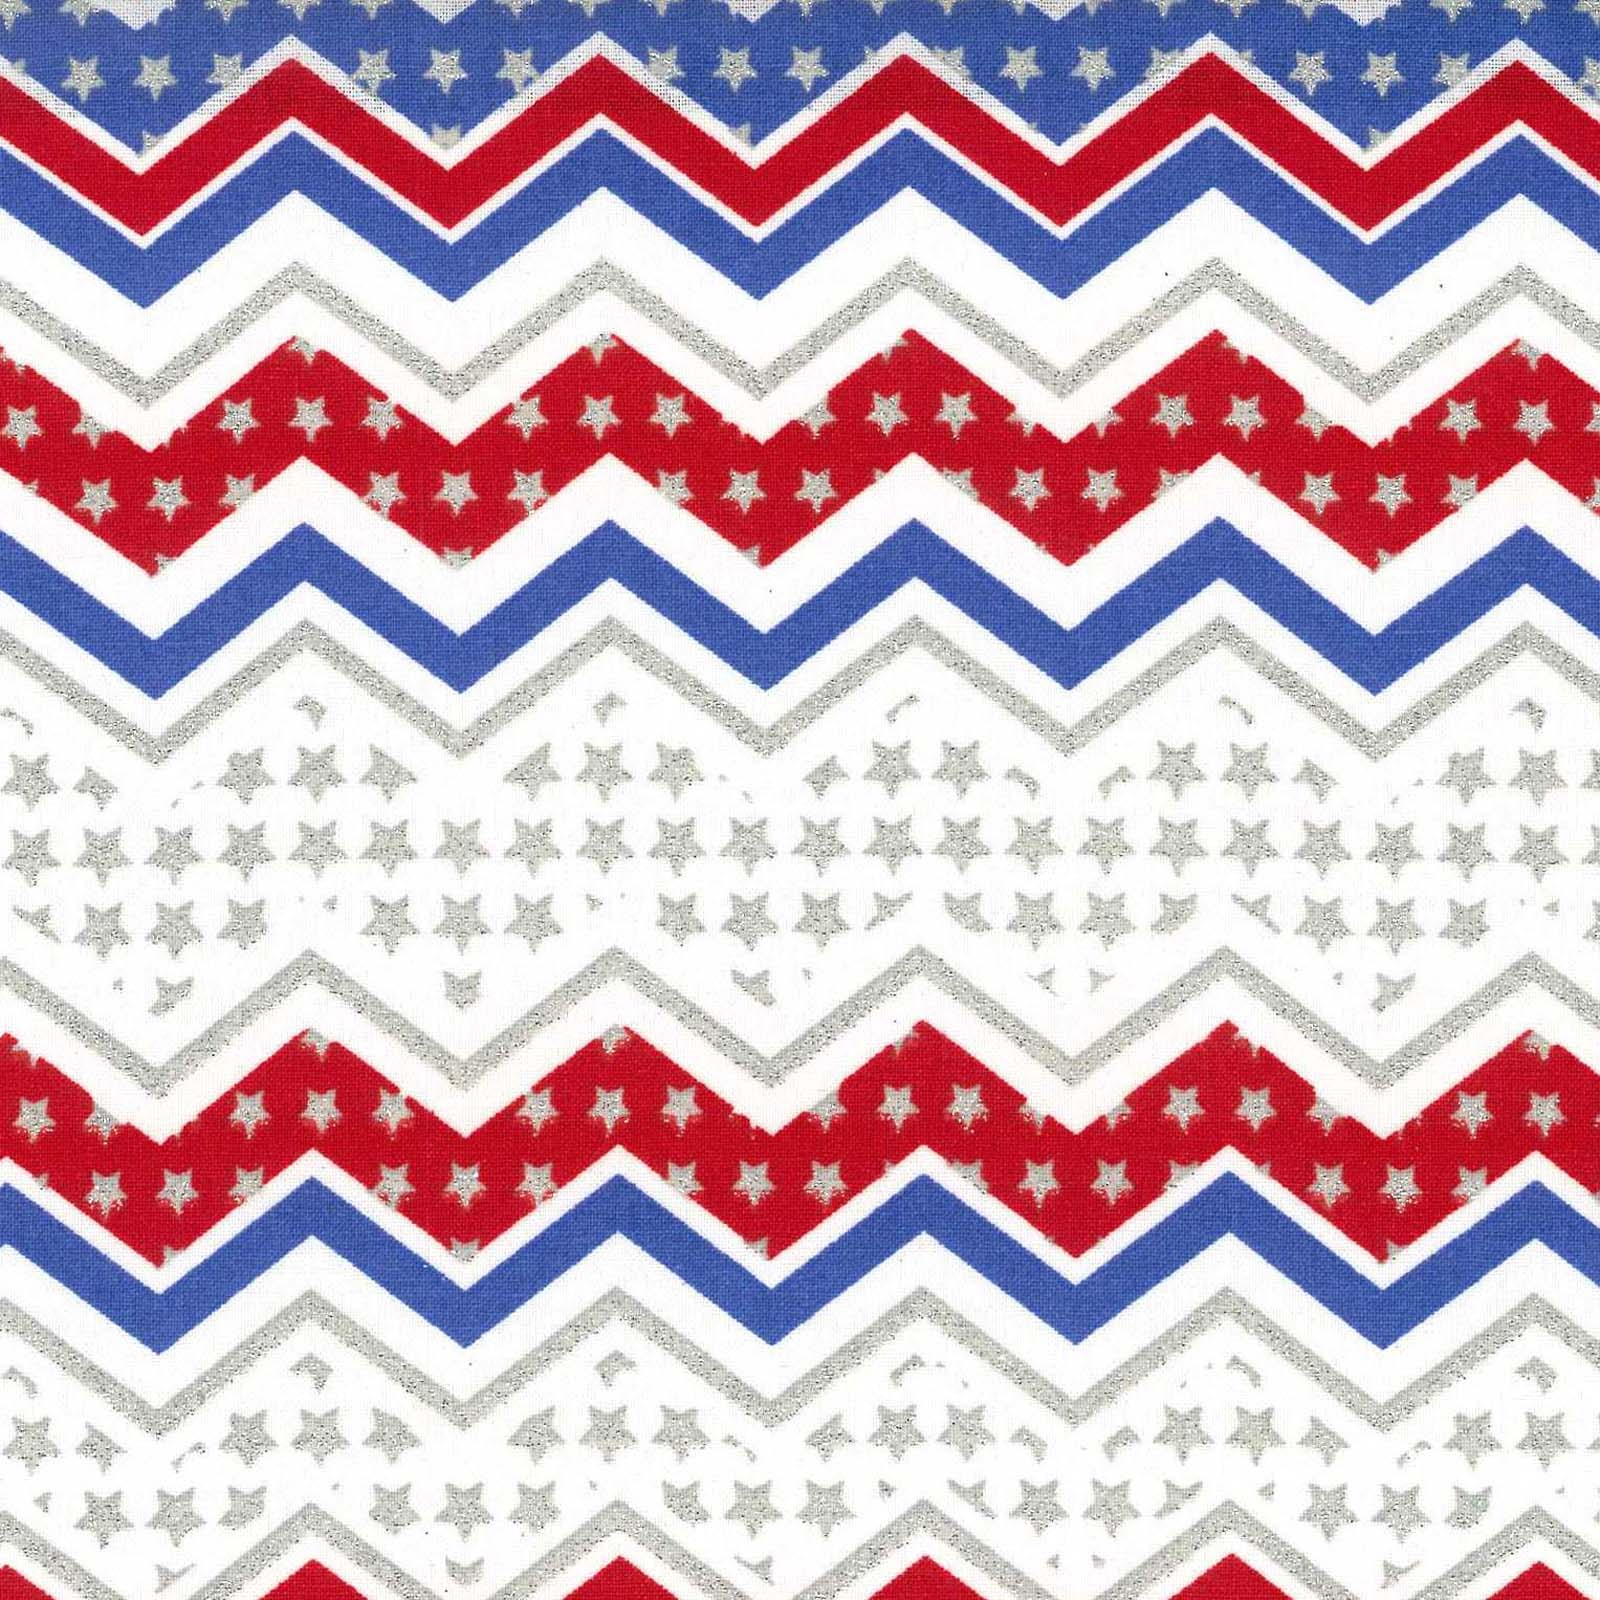 Chevron print fabric joanns - Holiday Inspirations Patriotic Fabric Red White Blue Chevron Glitter